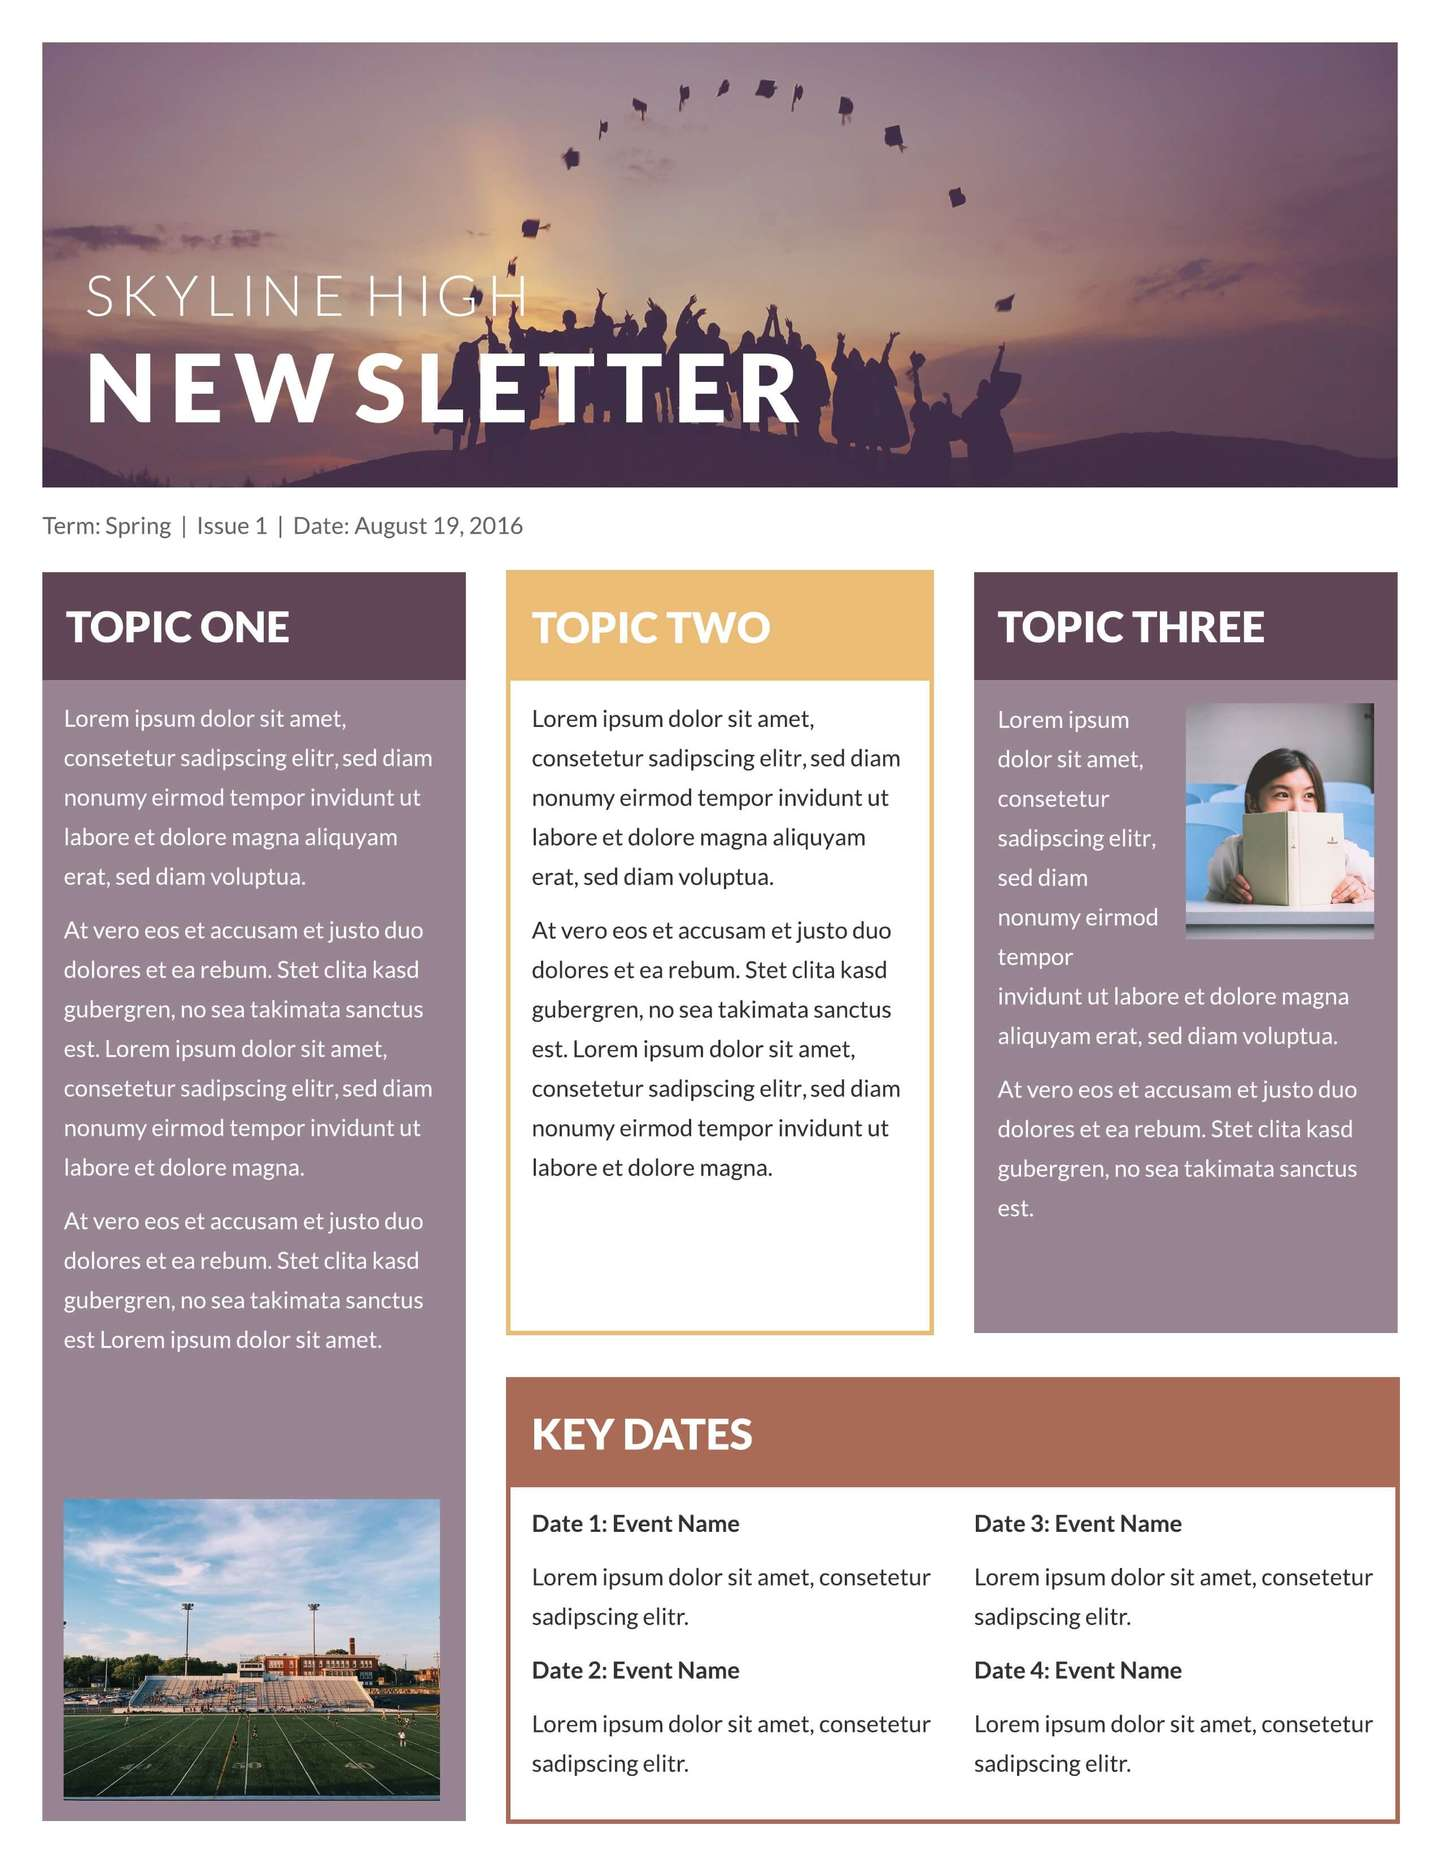 skyline high classroom newsletter template - Free Publisher Newsletter Templates